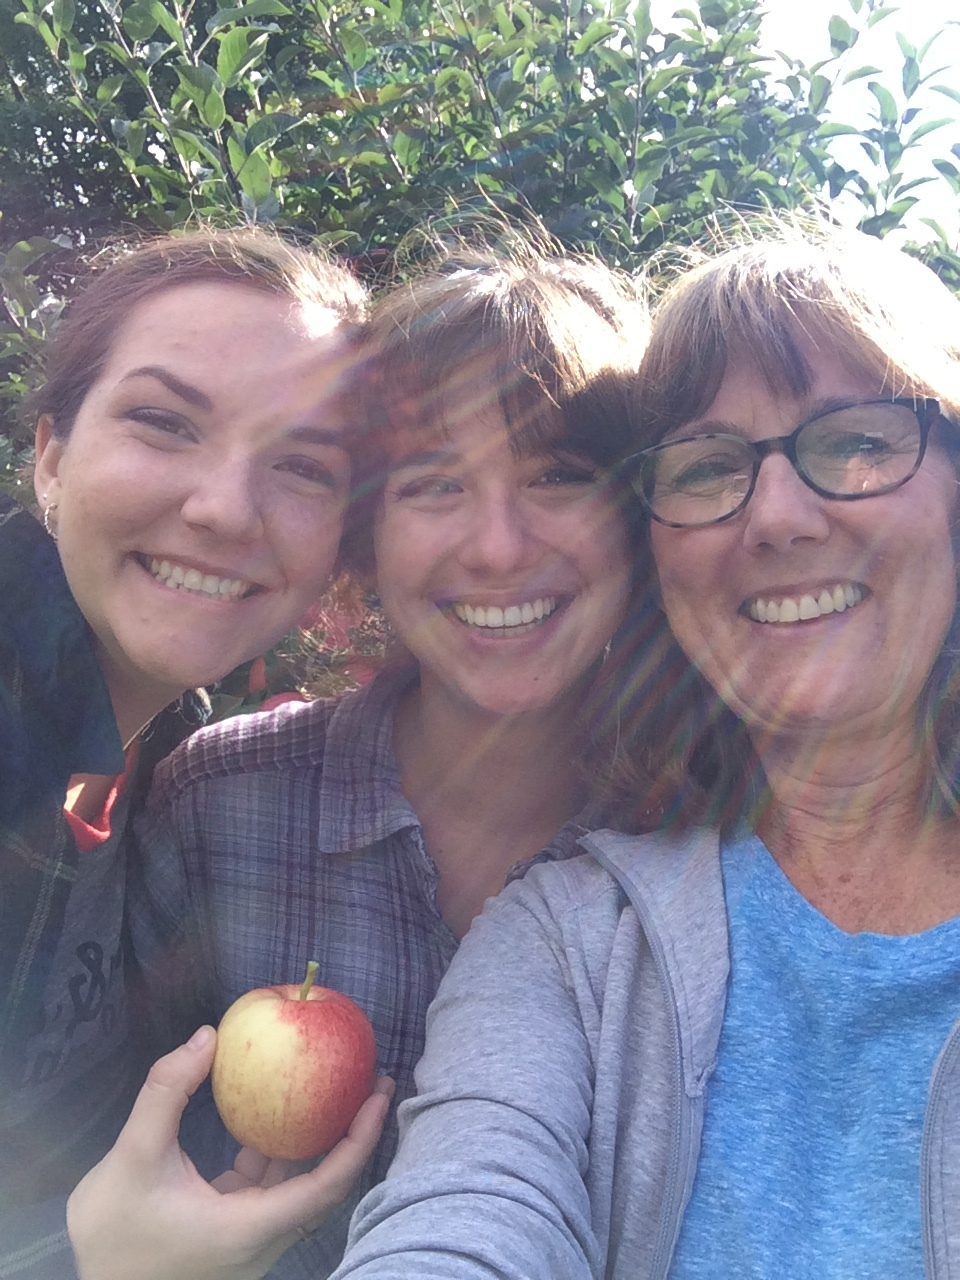 Hannah, myself, and my mom apple picking